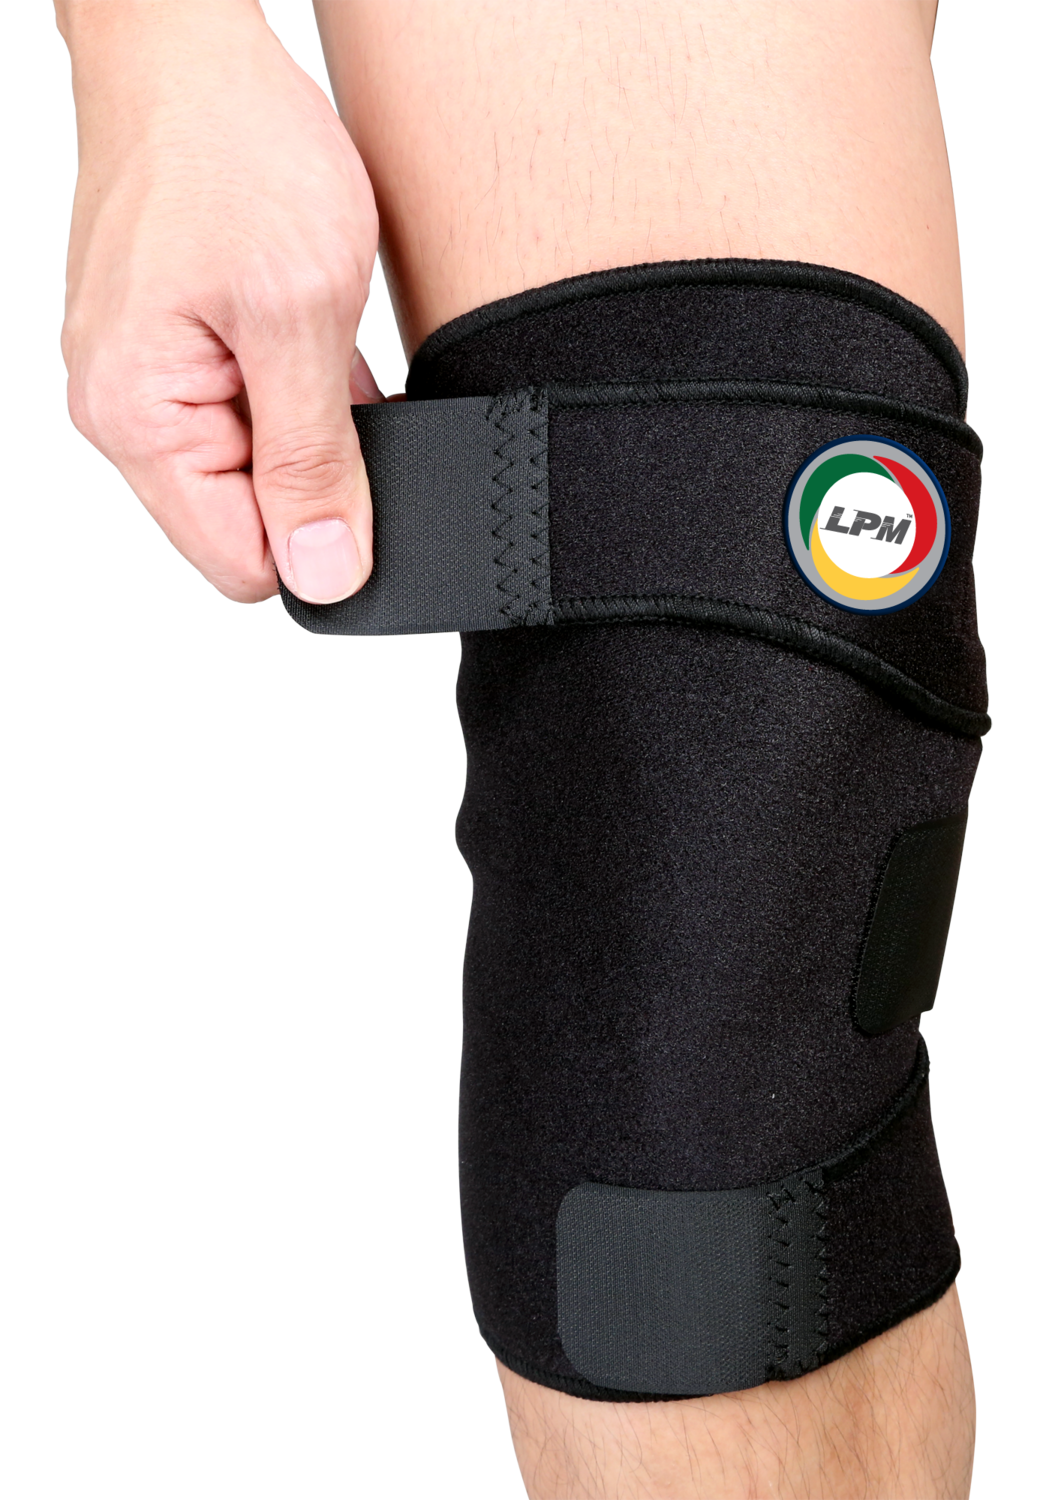 LPM CLOSED PATELLA KNEE SUPPORT